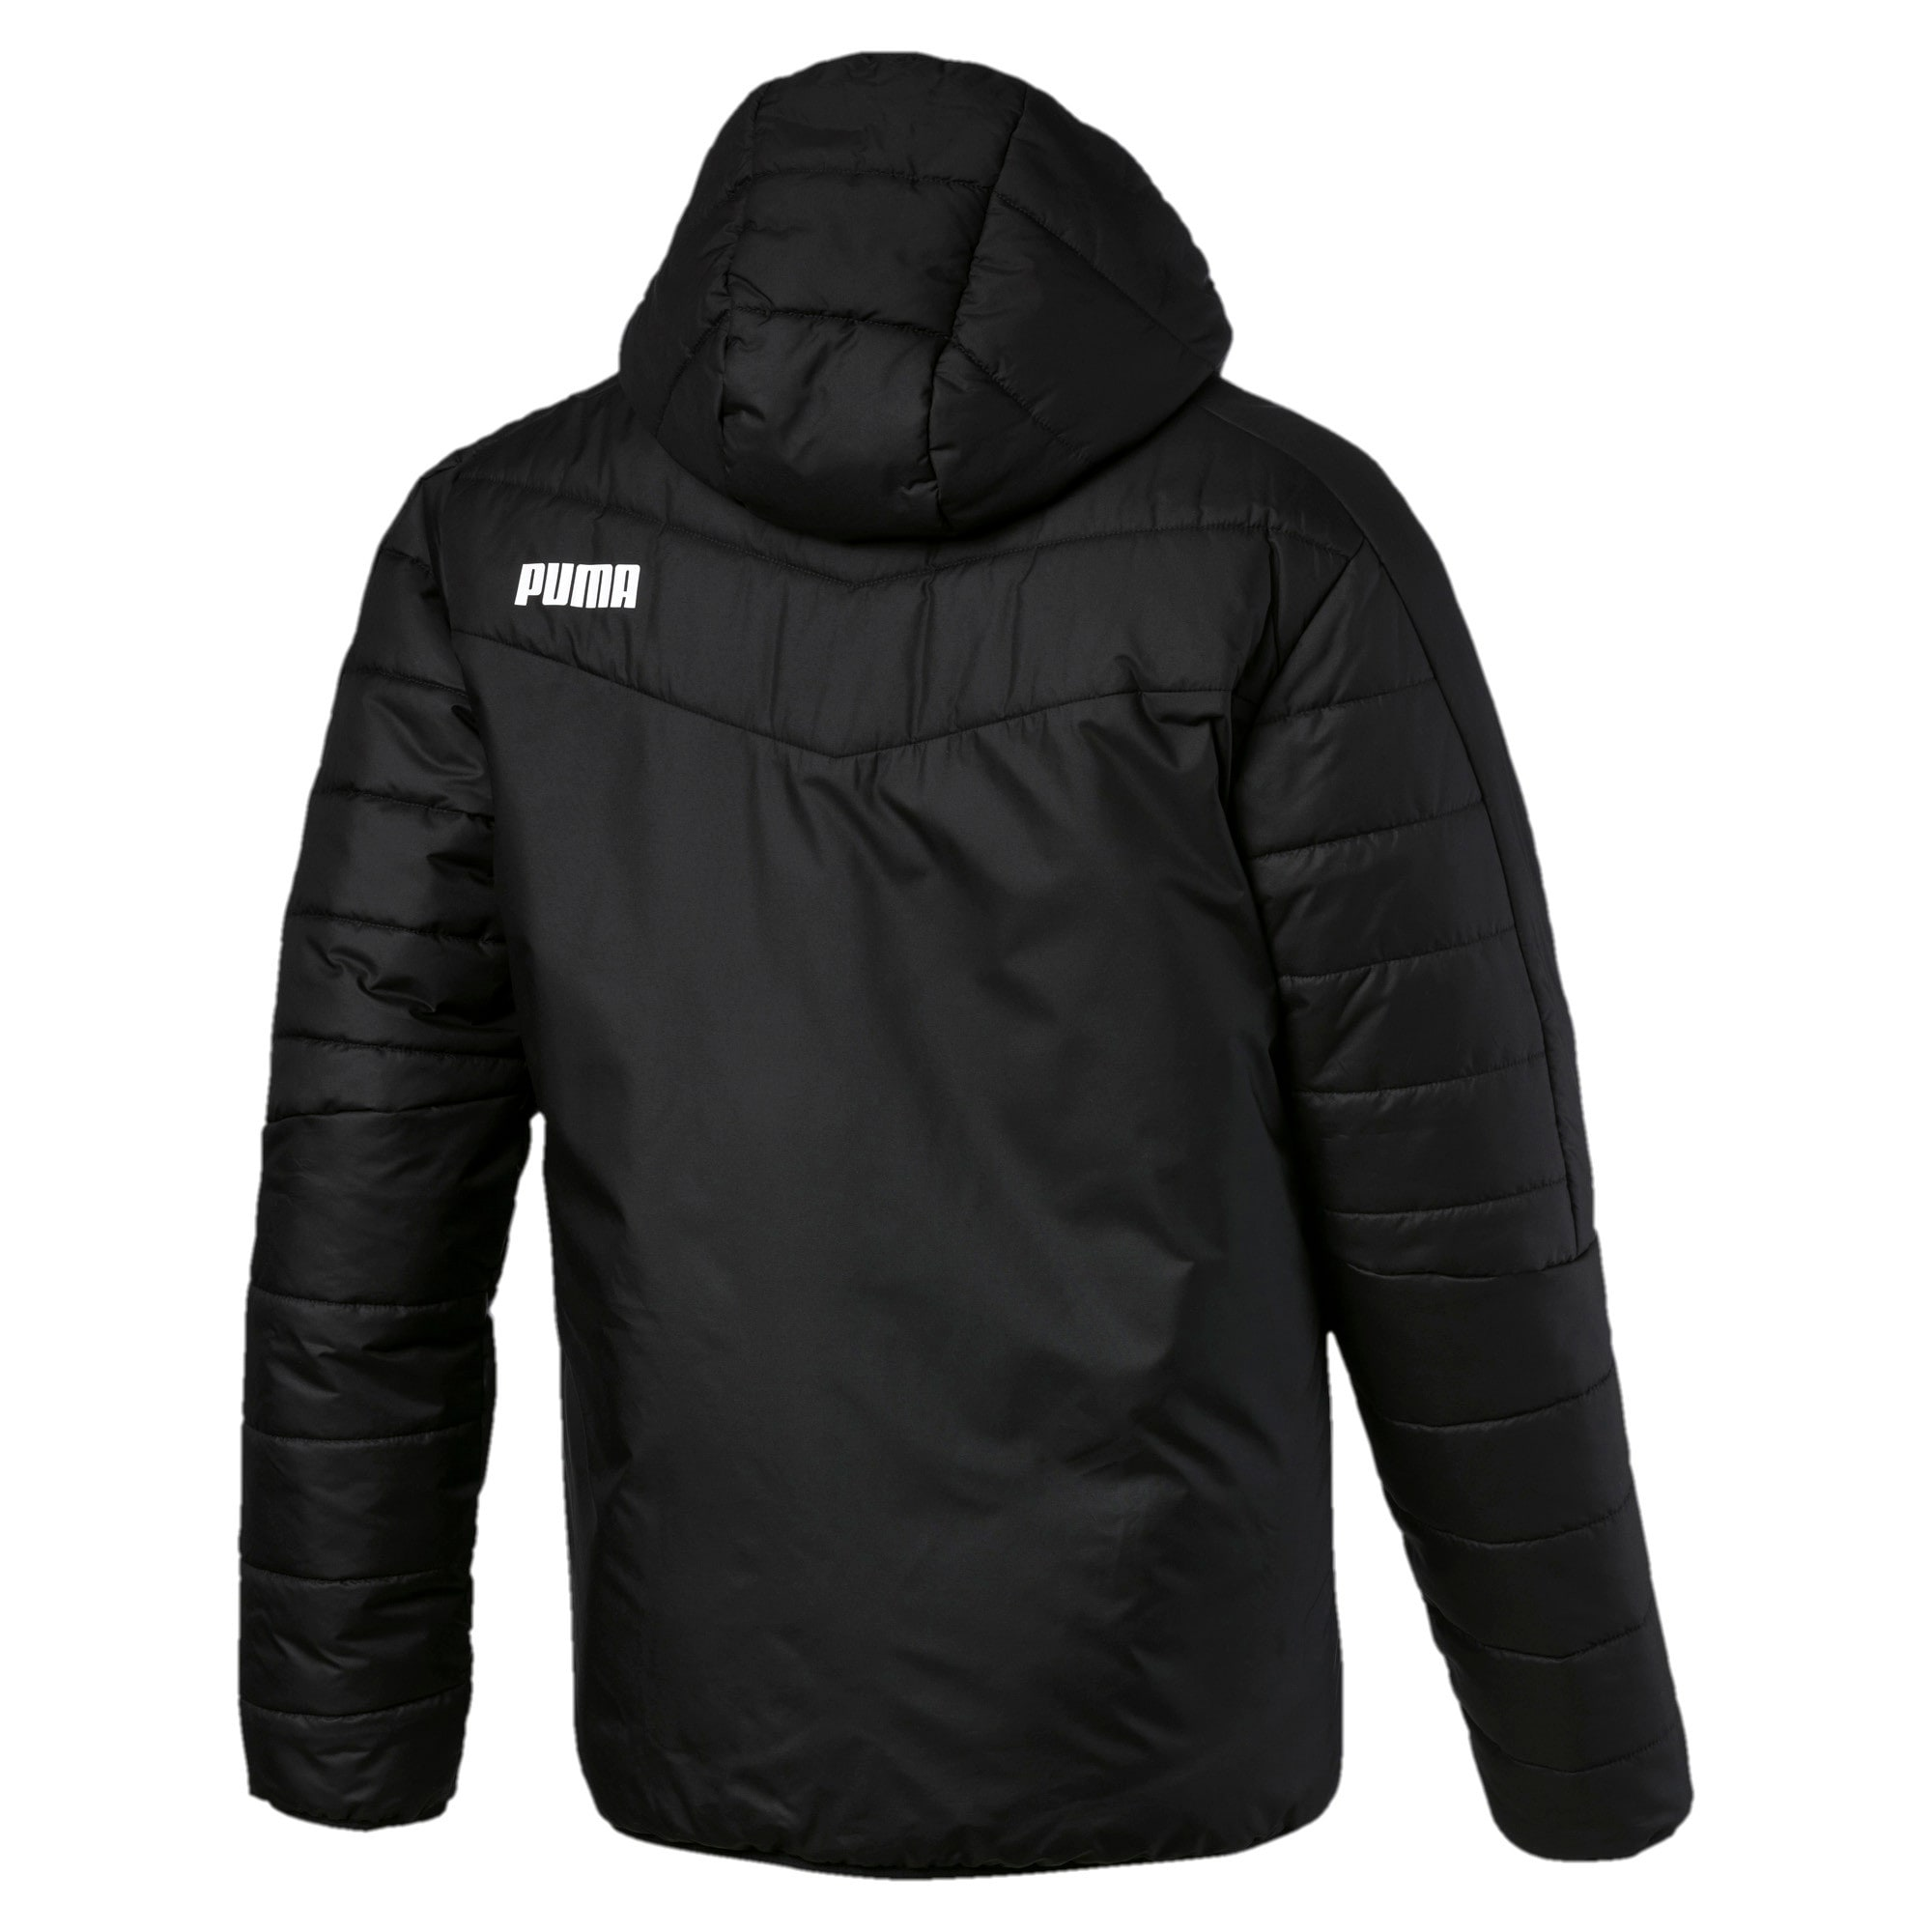 warmCELL Men's Padded Jacket, Puma Black, large